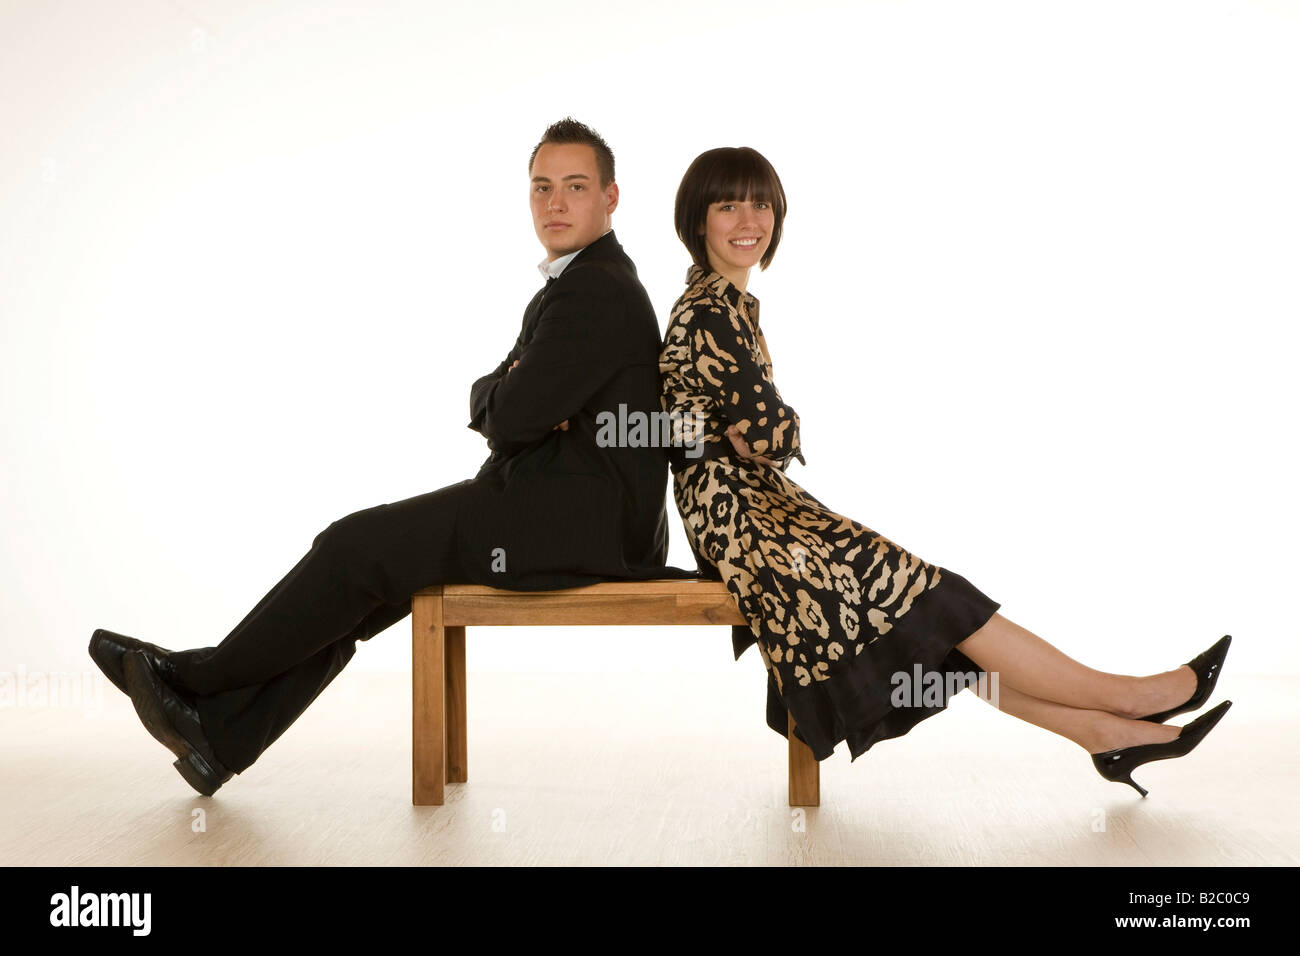 Man and woman in the early twenties sitting on a bench - Stock Image